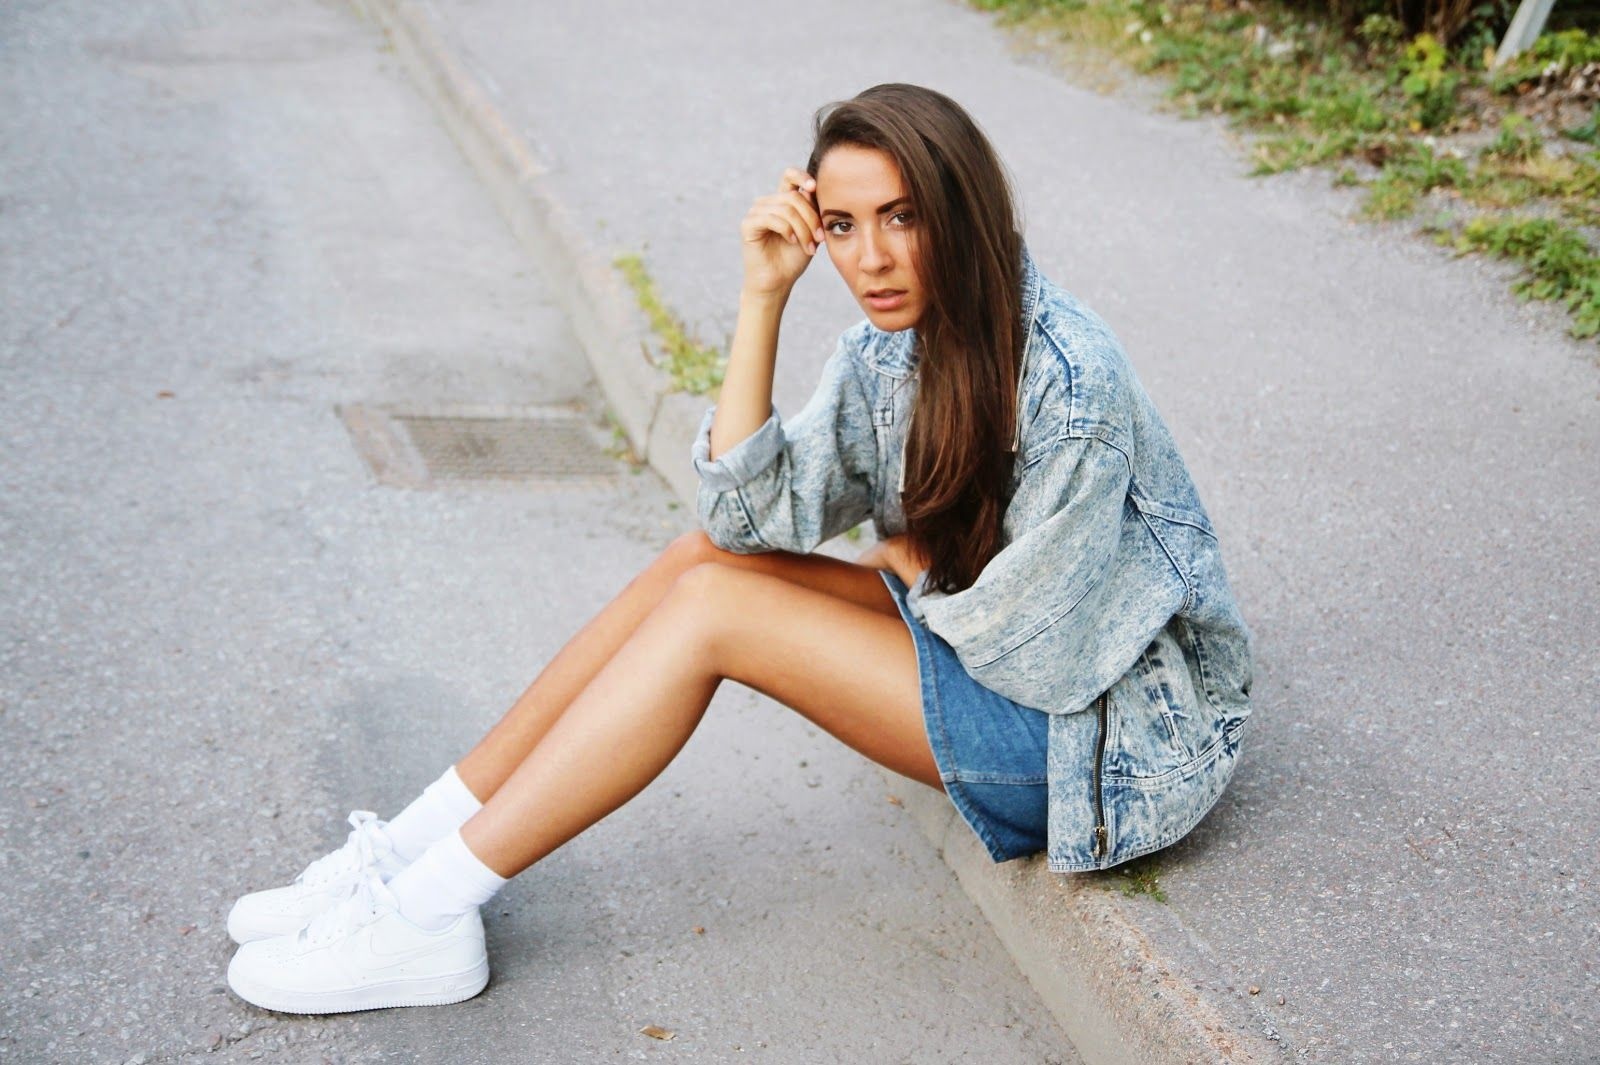 new product 25633 c11ad girls wearing nike air force 1 - Google Search